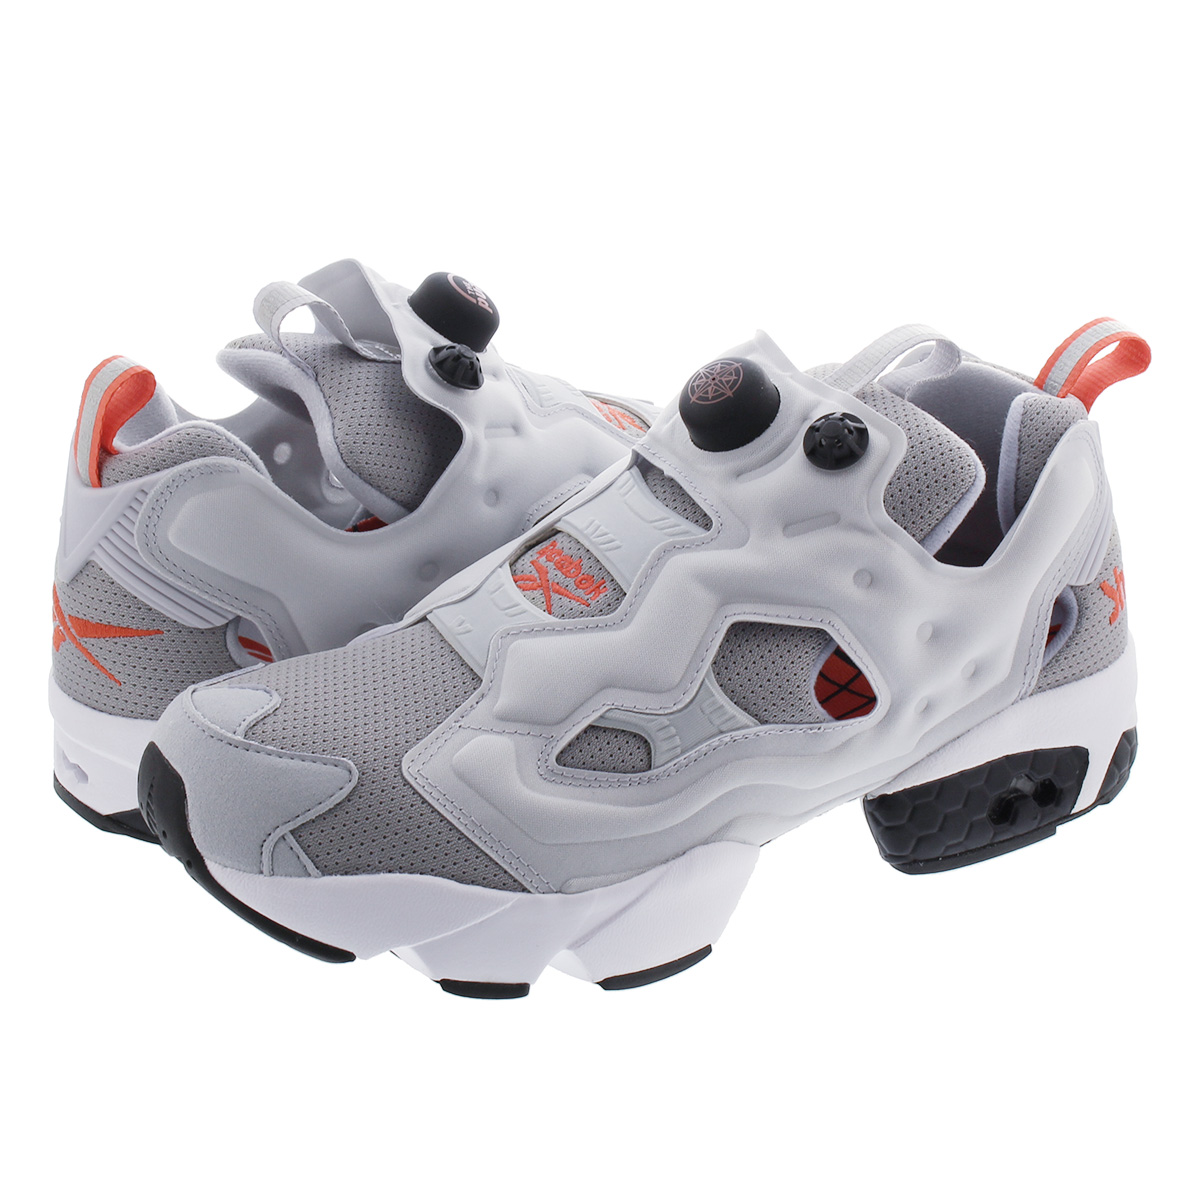 Reebok INSTAPUMP FURY OG 【CITY PACK】【SHANGHAI】 リーボック インスタ ポンプ フューリー OG GOLD GREY/VIVID ORANGE/BLACK fw4755